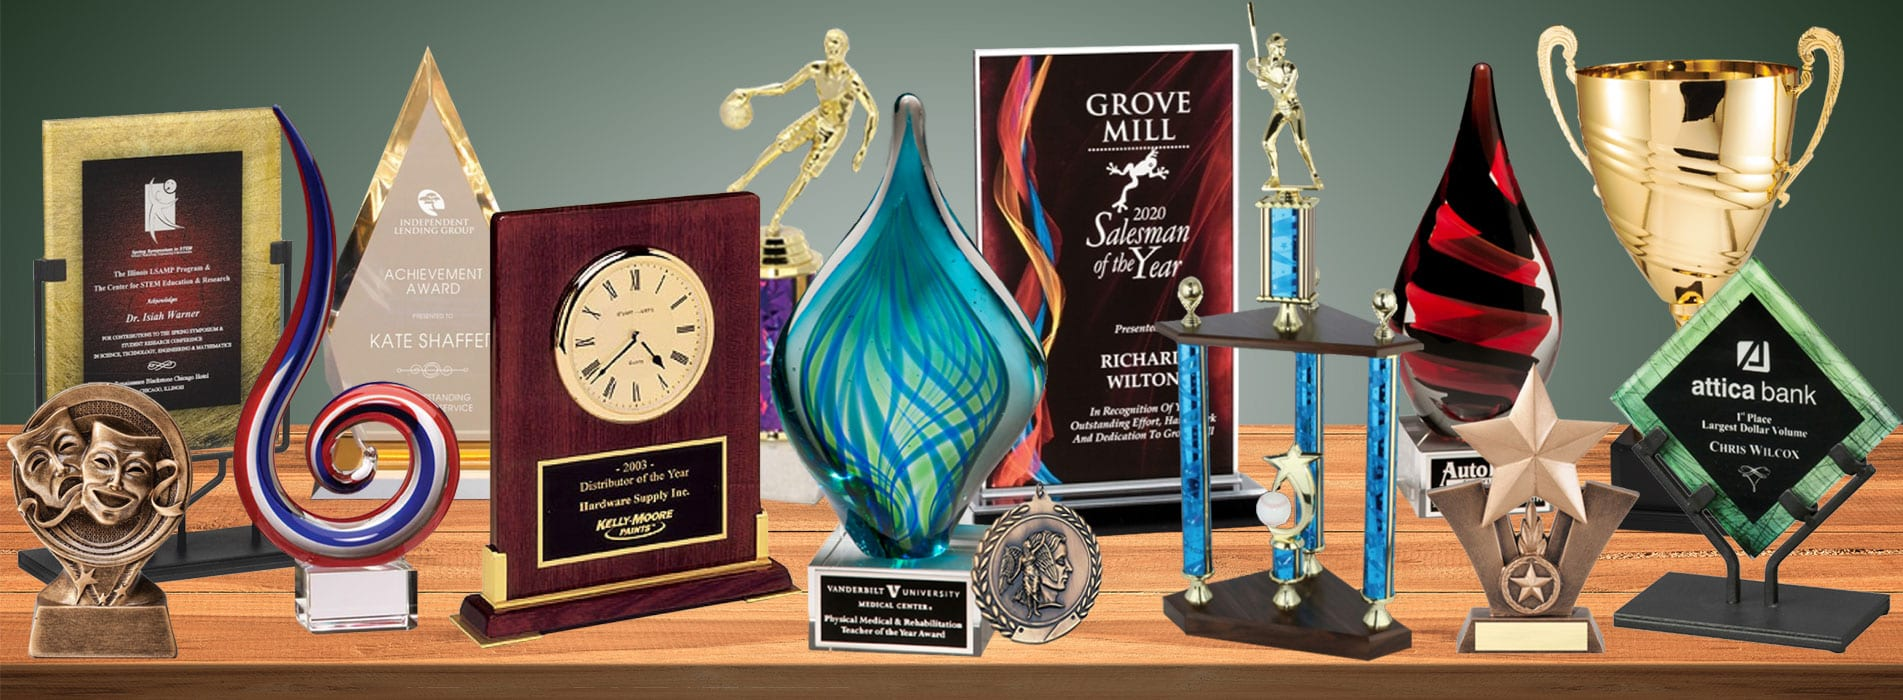 trophy, cups,, acrylic, awards,, crystal, medal, glass, clock